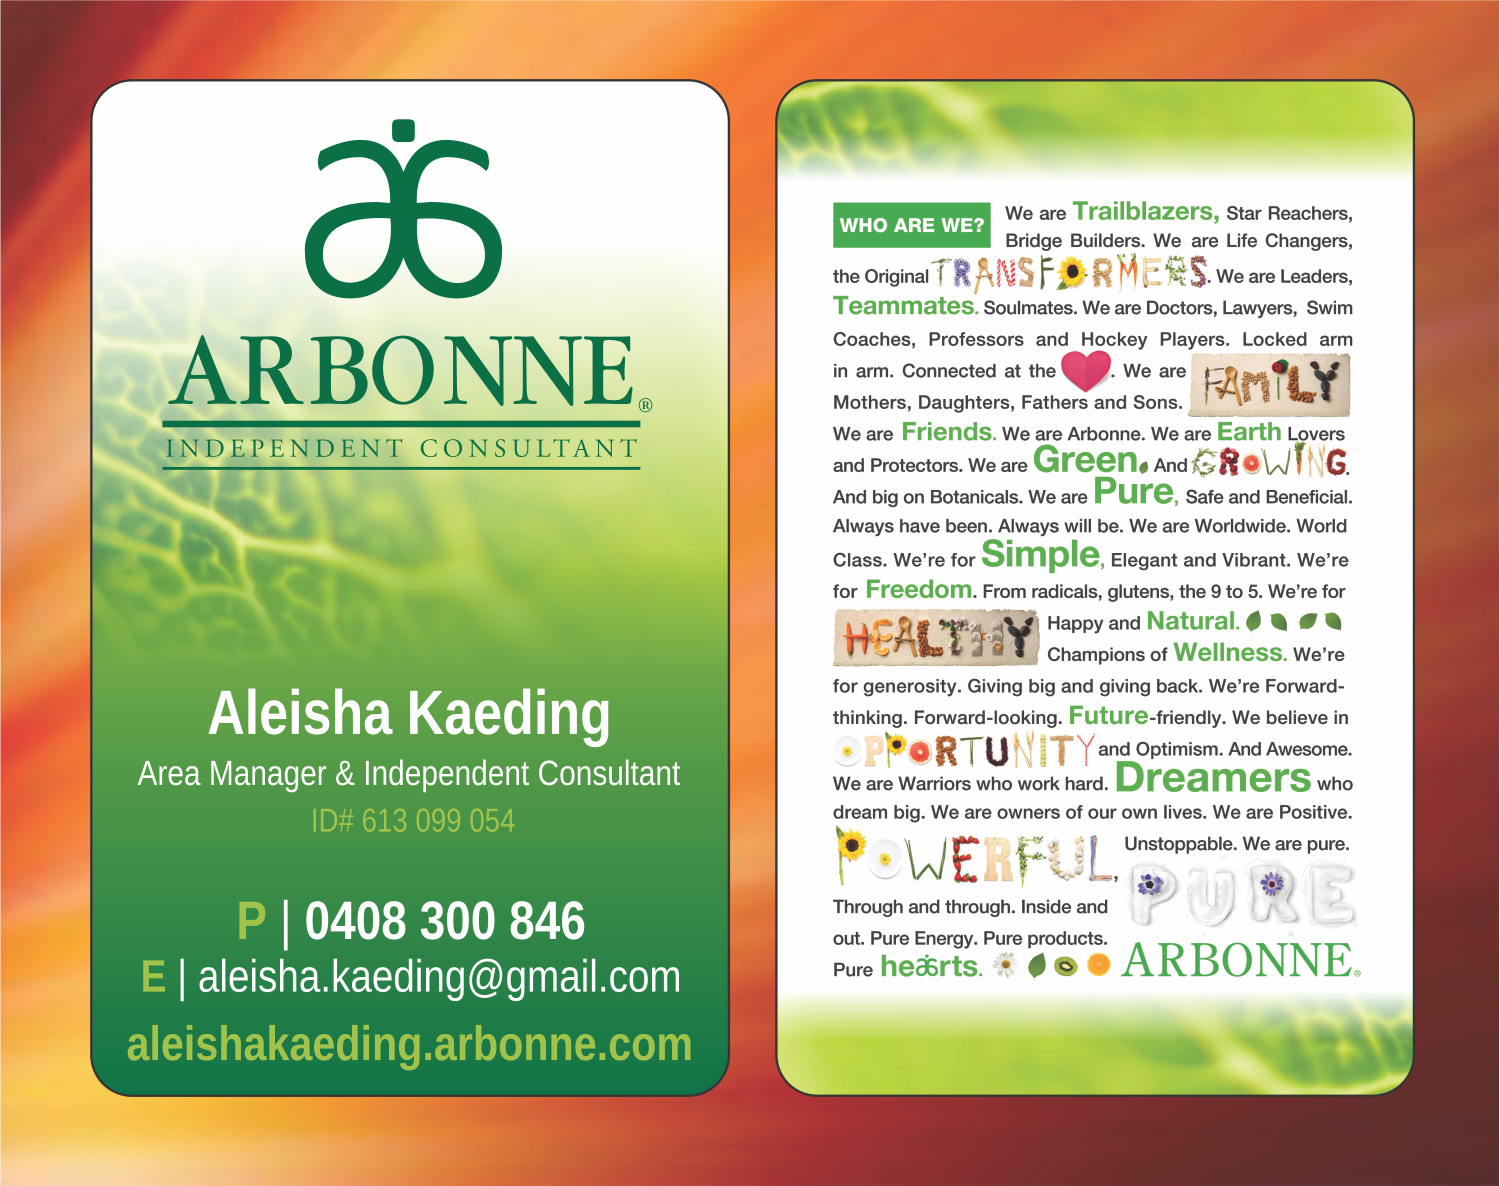 best pictures for arbonne business cards - Google Search | arbonne ...